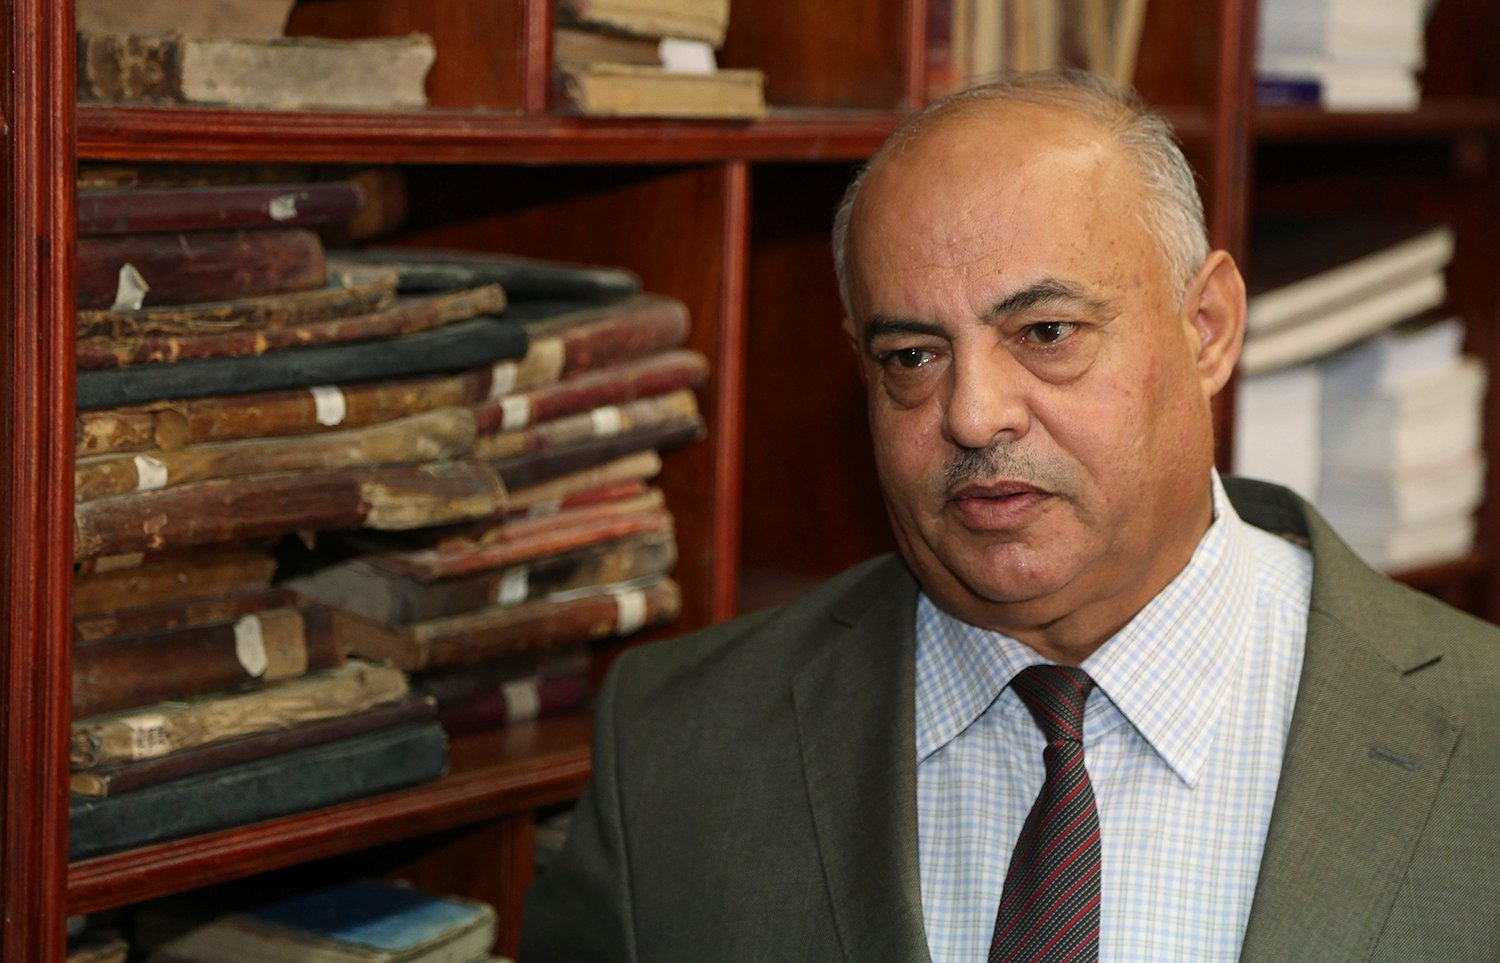 Jamal Abdel-Majeed Abdulkareem, acting director of Baghdad libraries and archives, speaks during an interview with The Associated Press at the Baghdad National Library in Iraq. The Associated Press